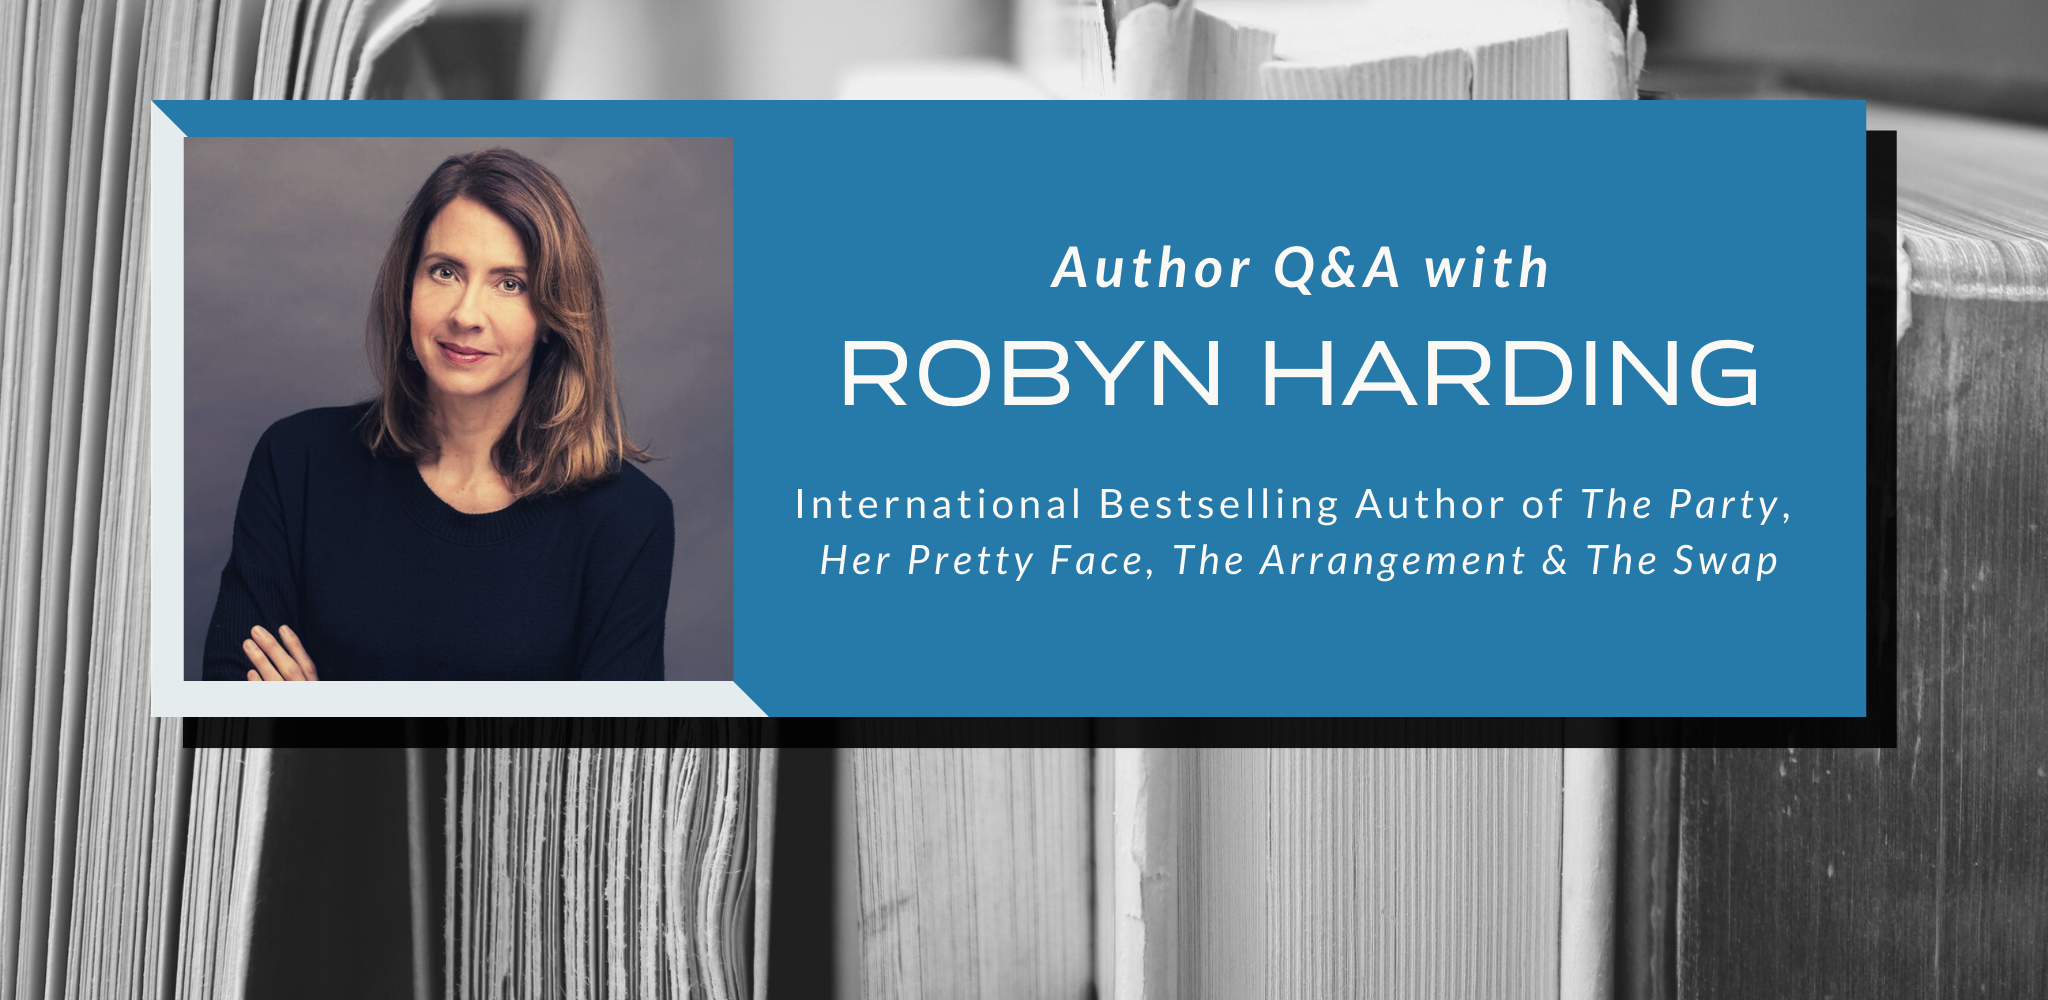 Q&A with Robyn Harding